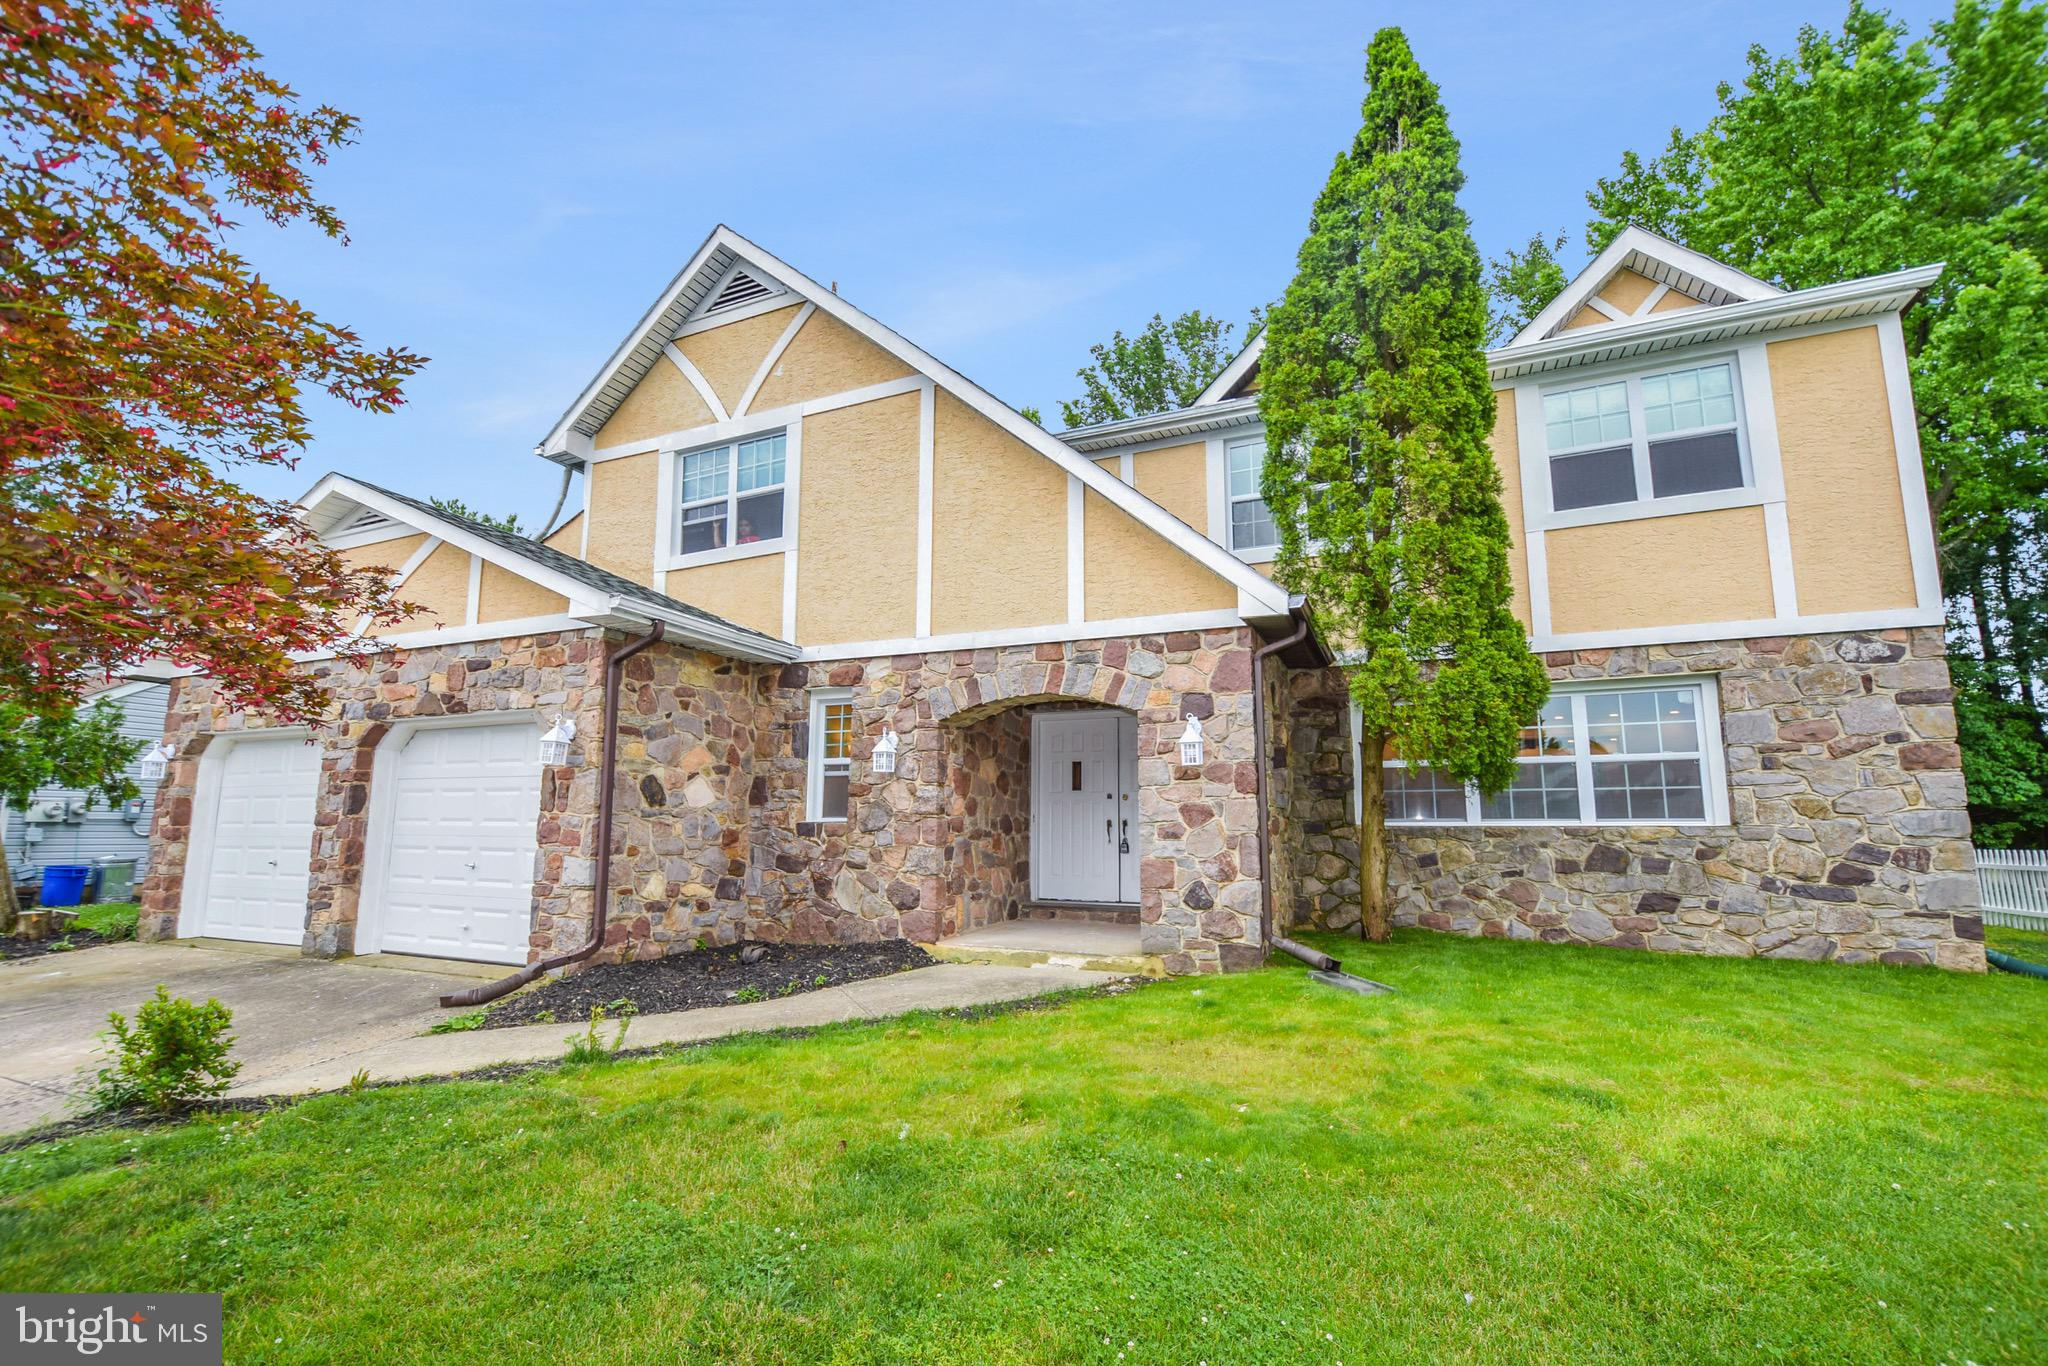 585 BUCK DRIVE, FAIRLESS HILLS, PA 19030